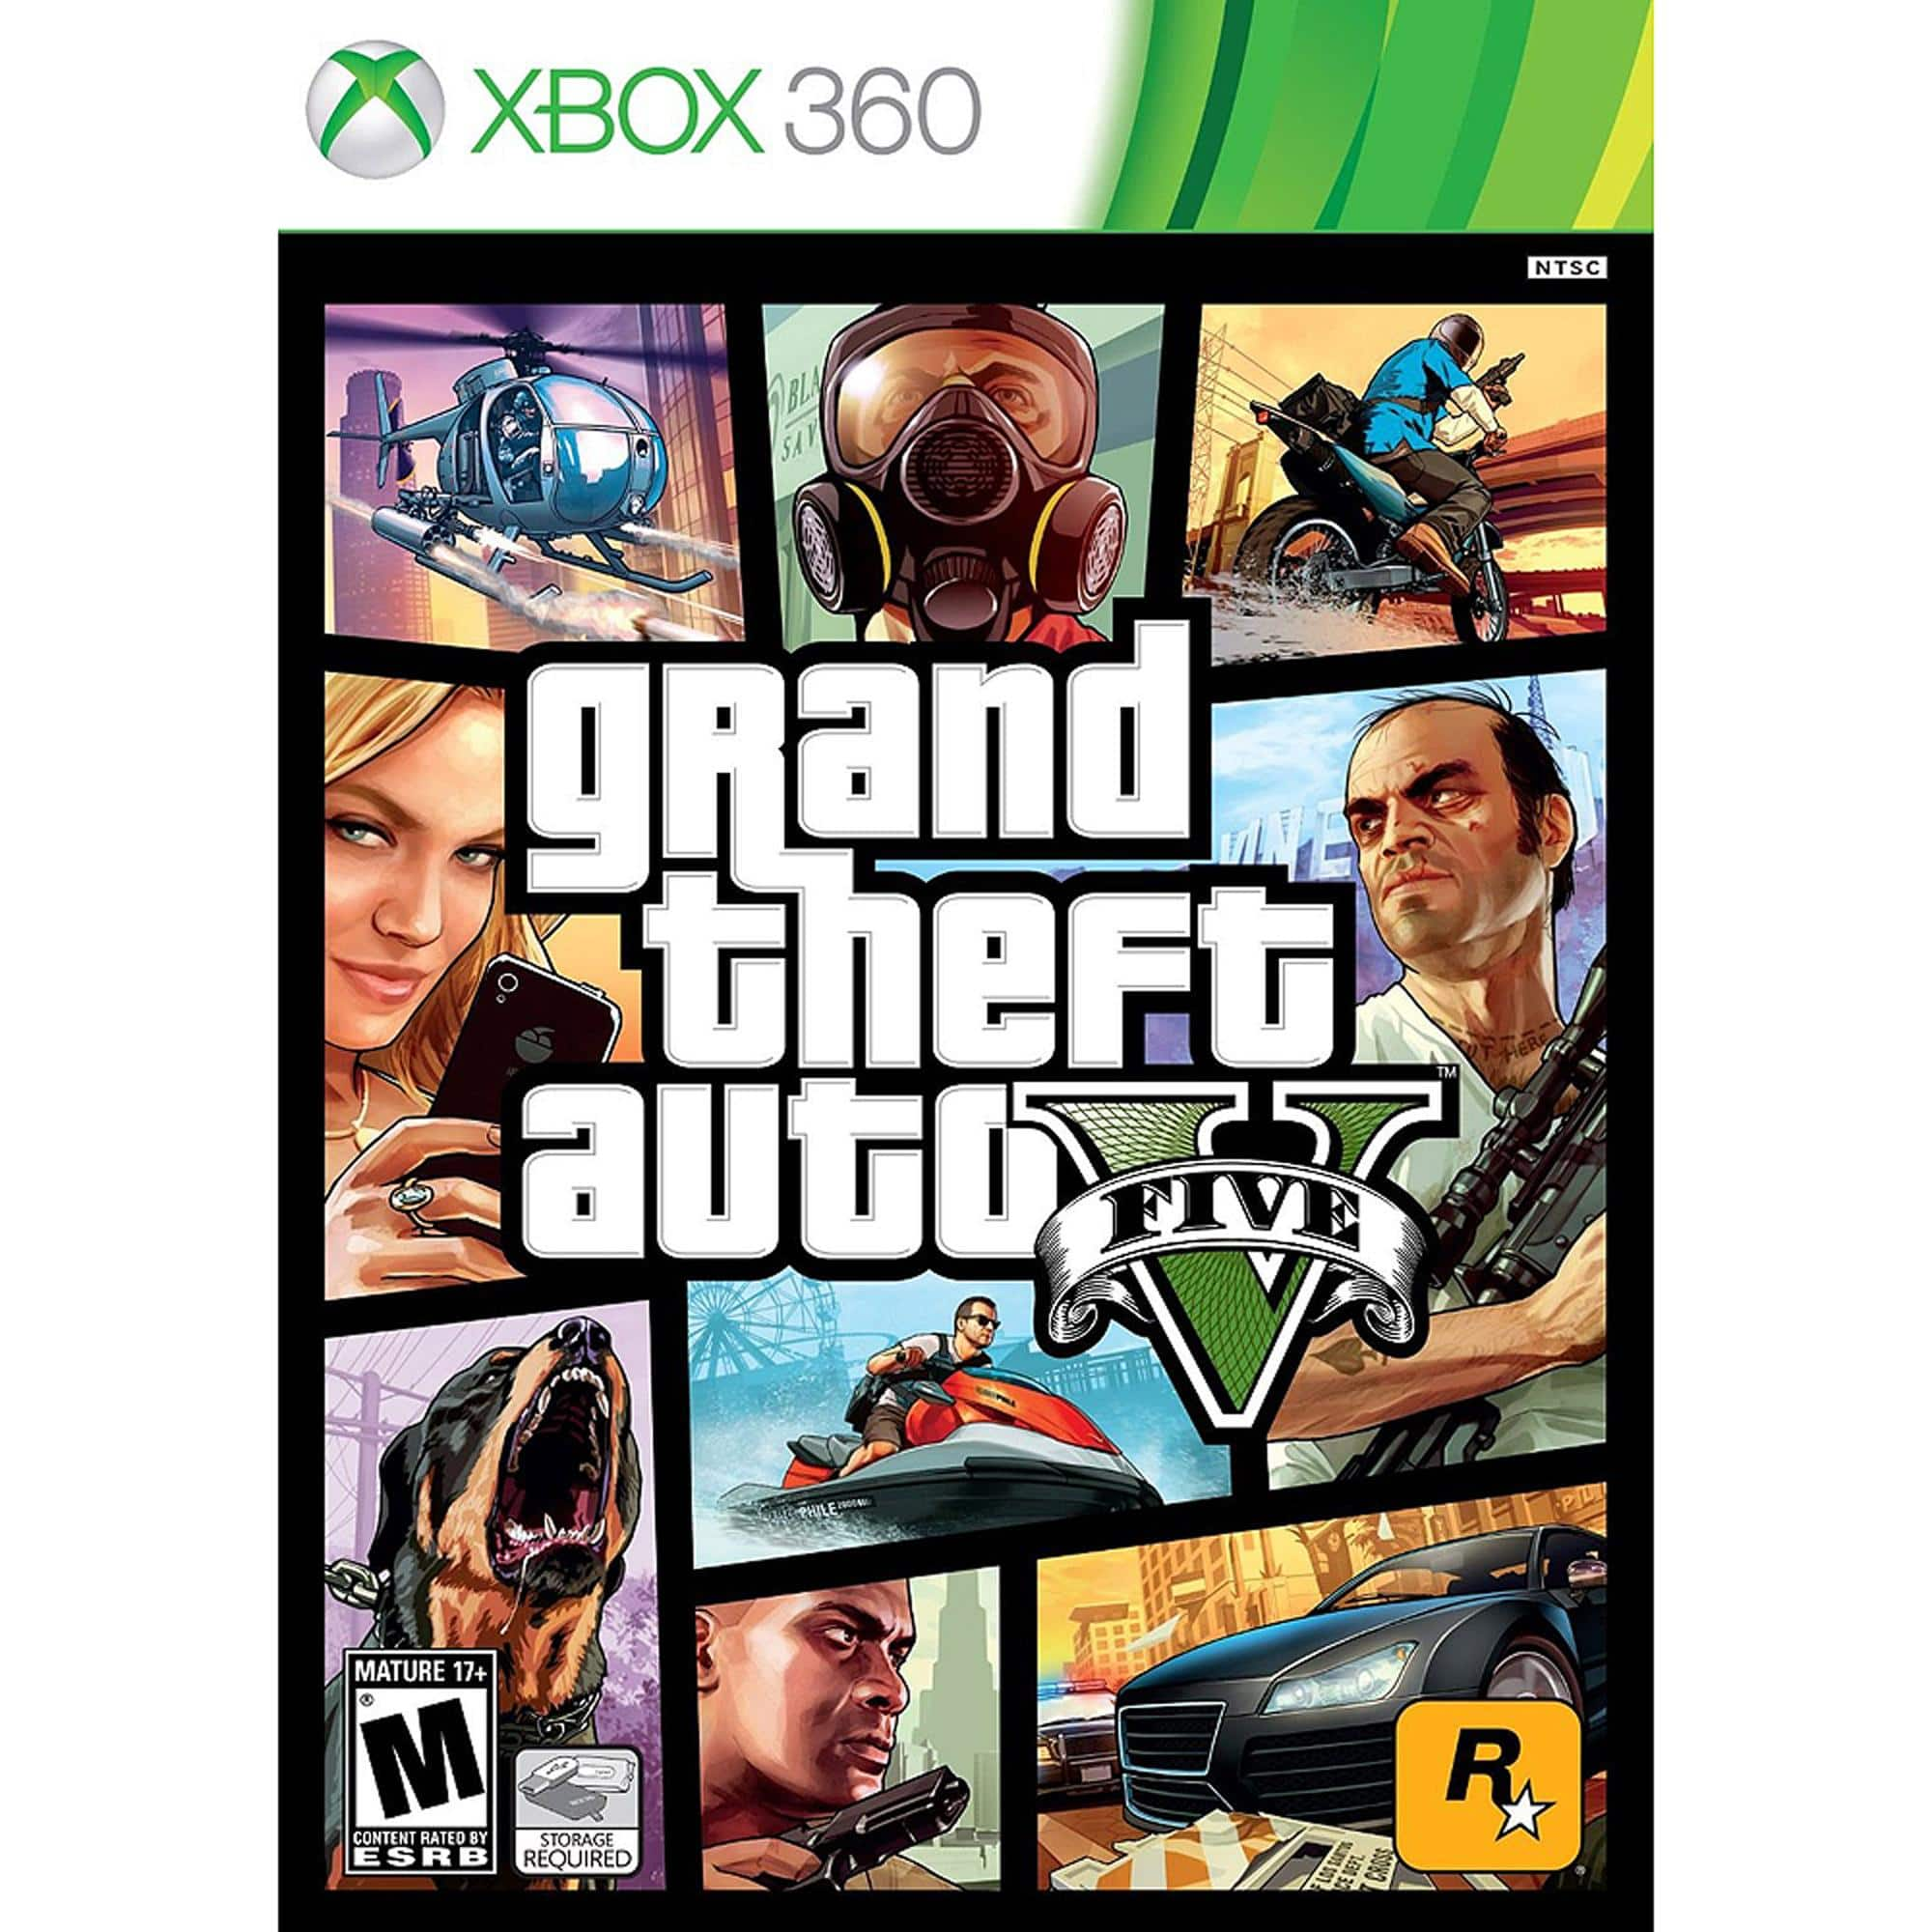 Grand Theft Auto V for Xbox 360 & PS3 used at Walmart $11.88 free instore pickup